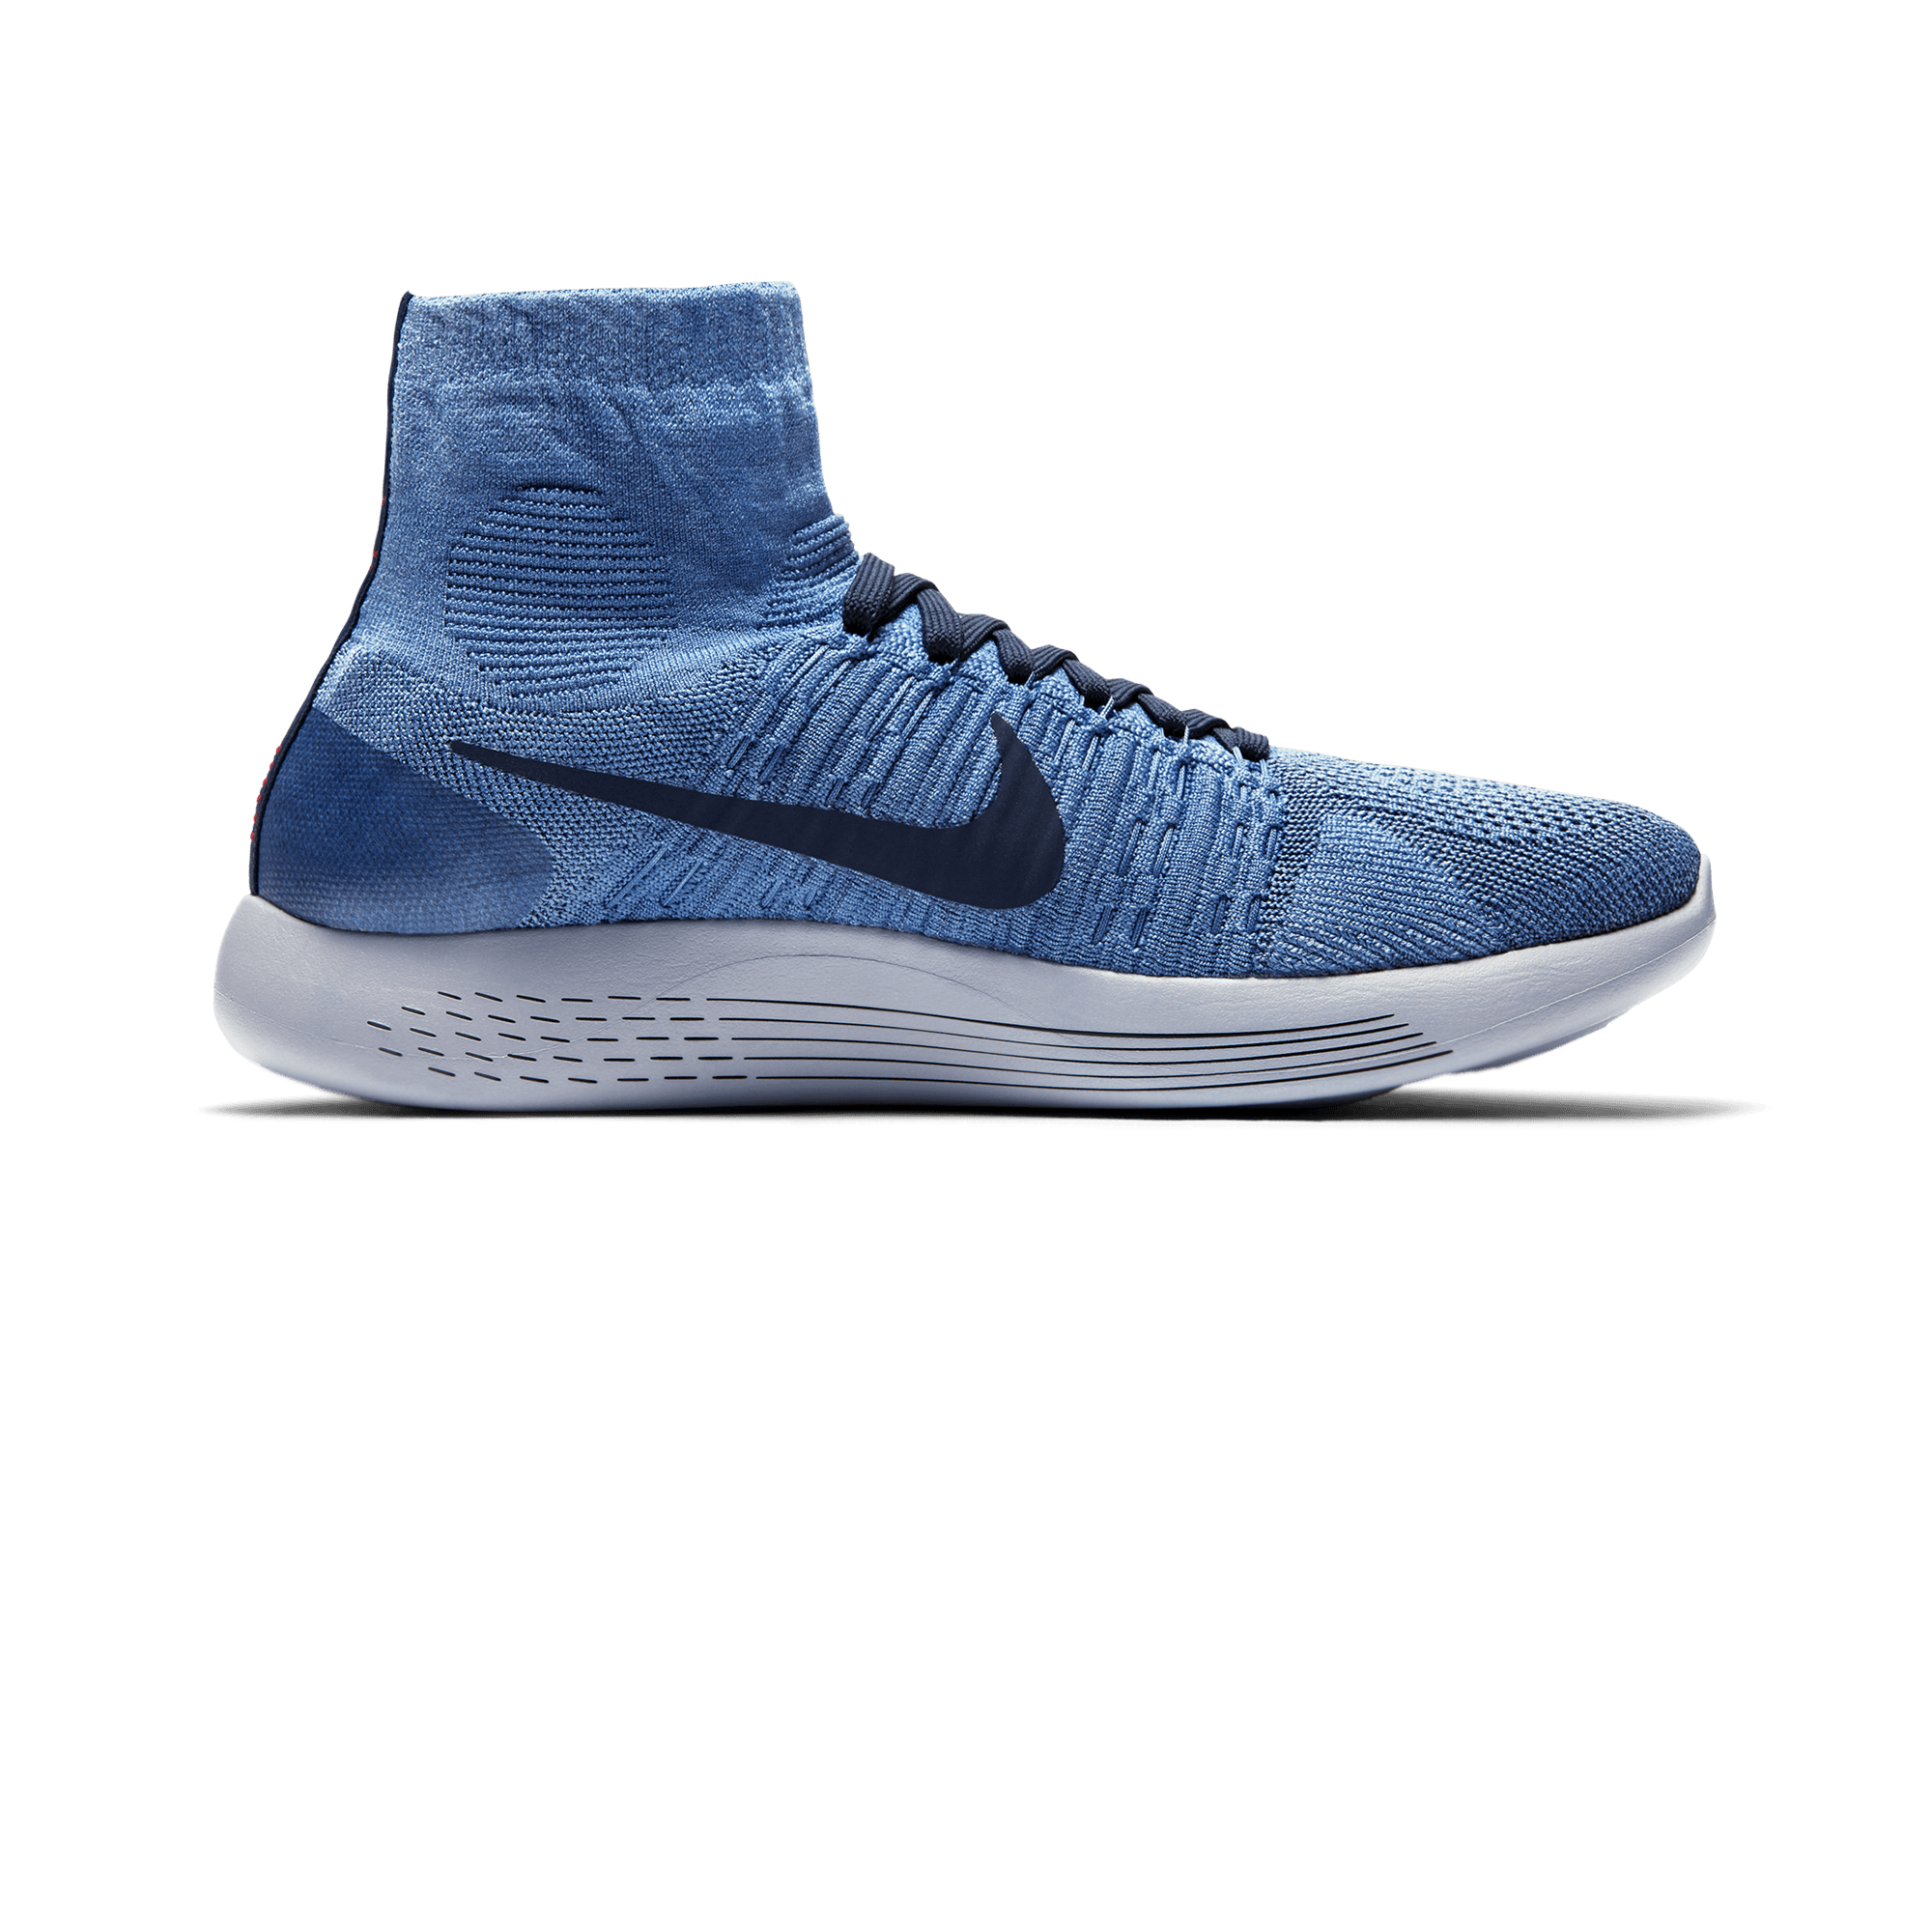 Nike Lunarepic Flyknit Hombre Ucraniano